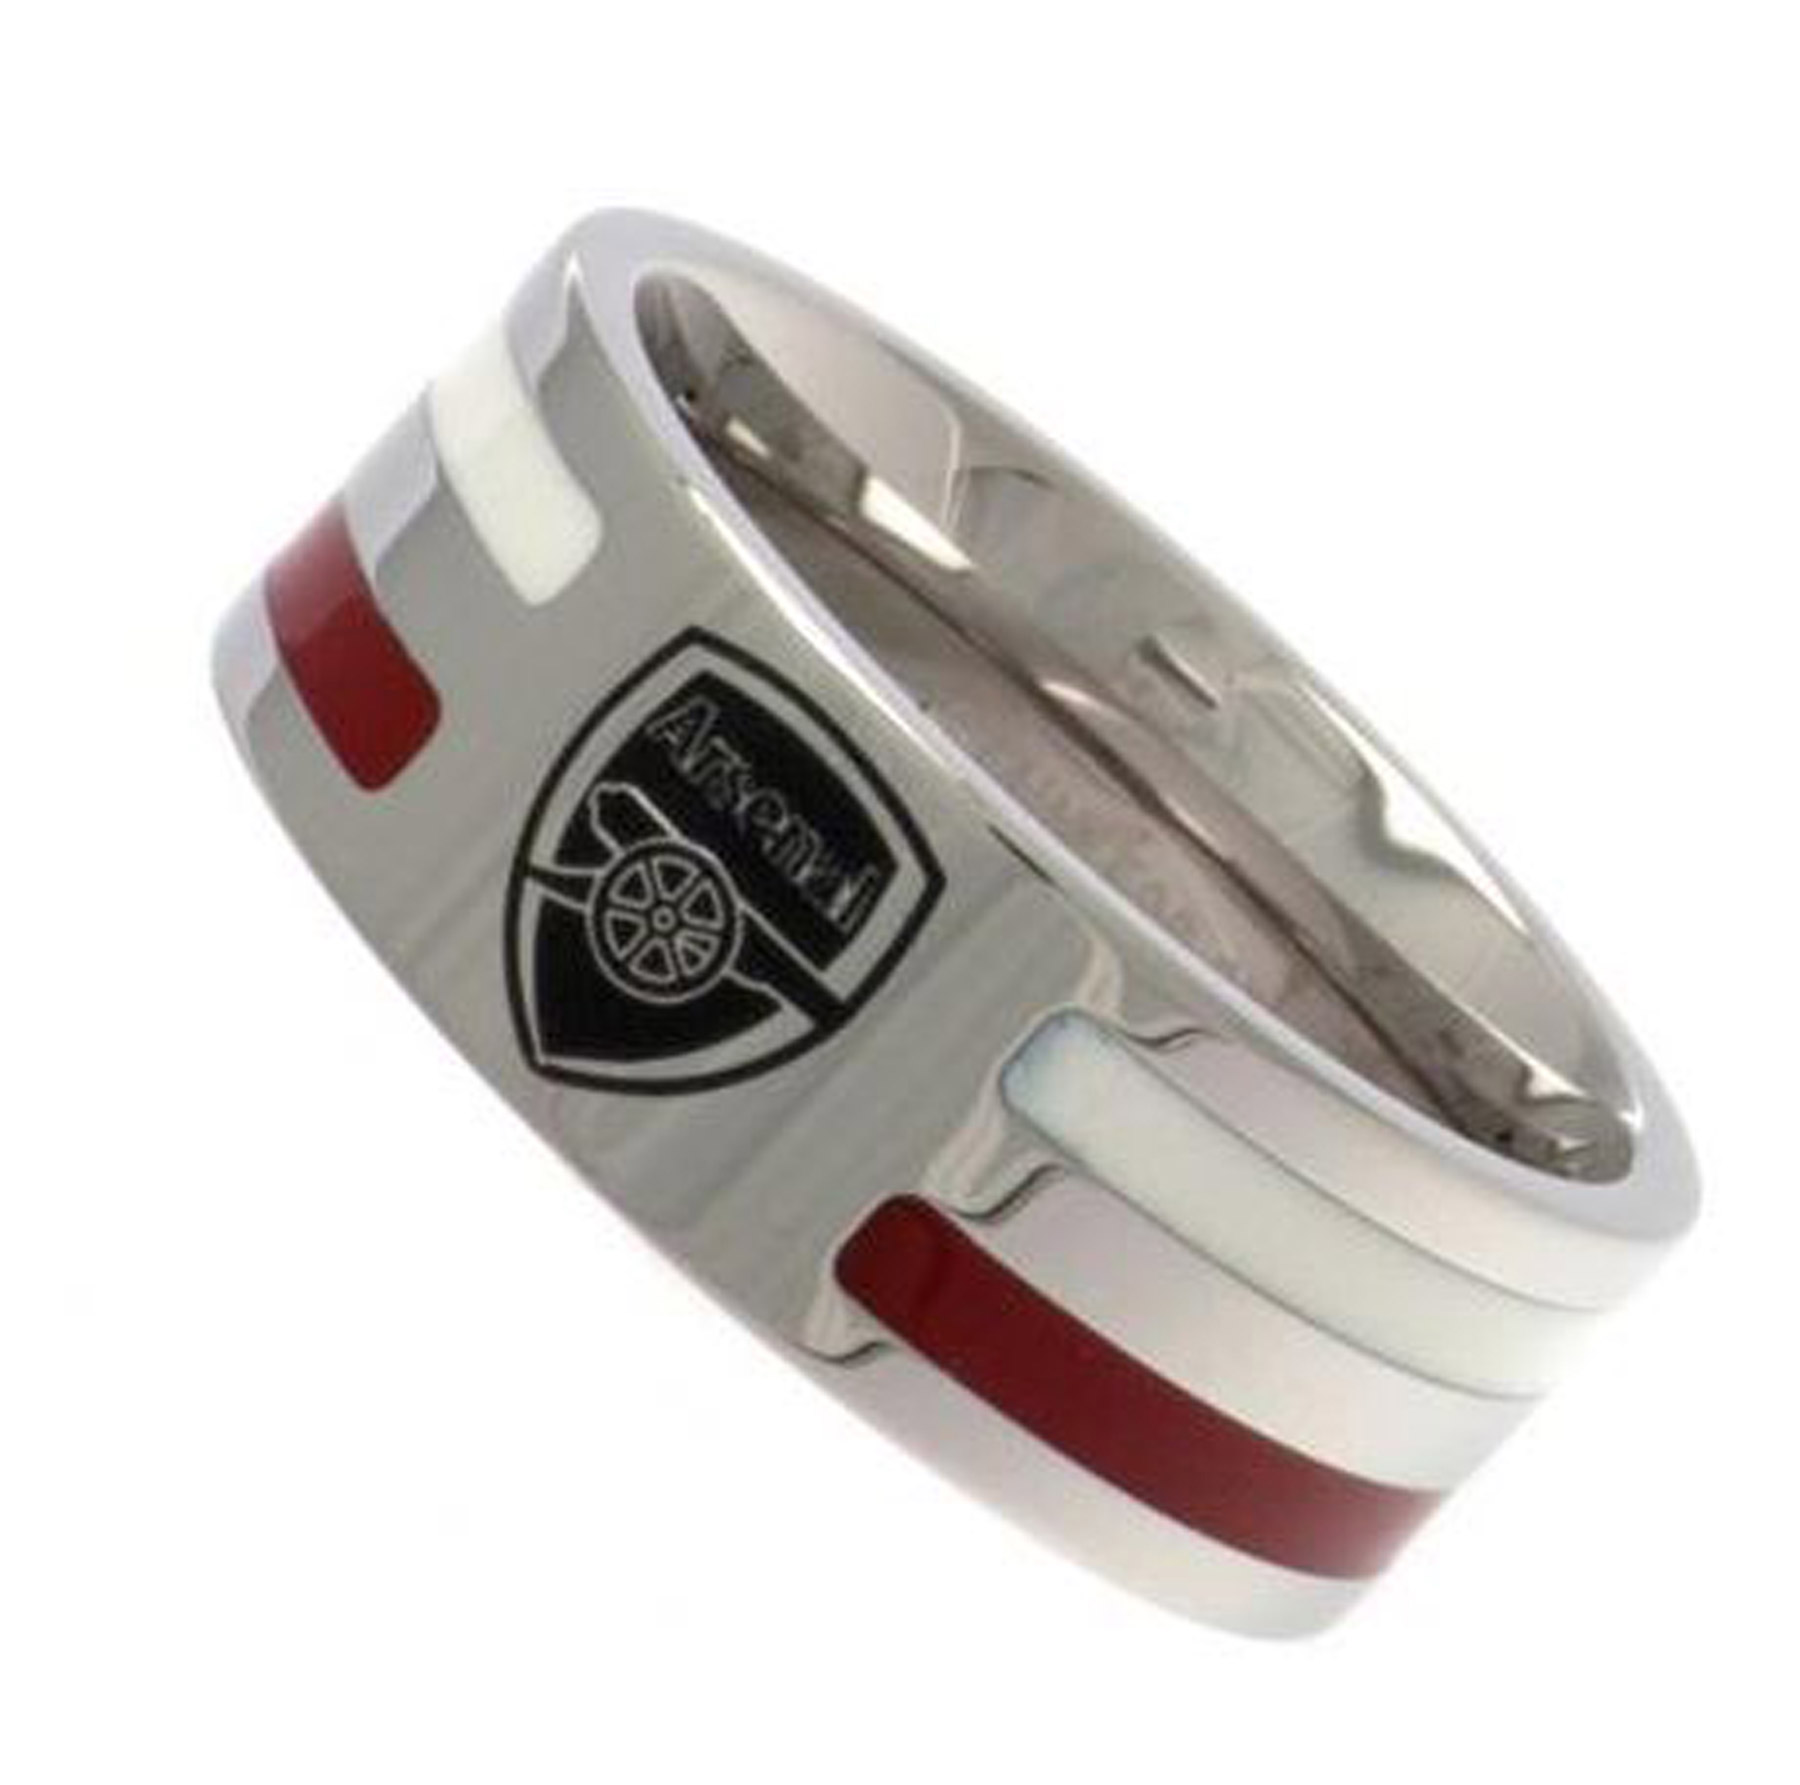 Arsenal Colour Stripe Crest Band Ring - Stainless Steel, N/A